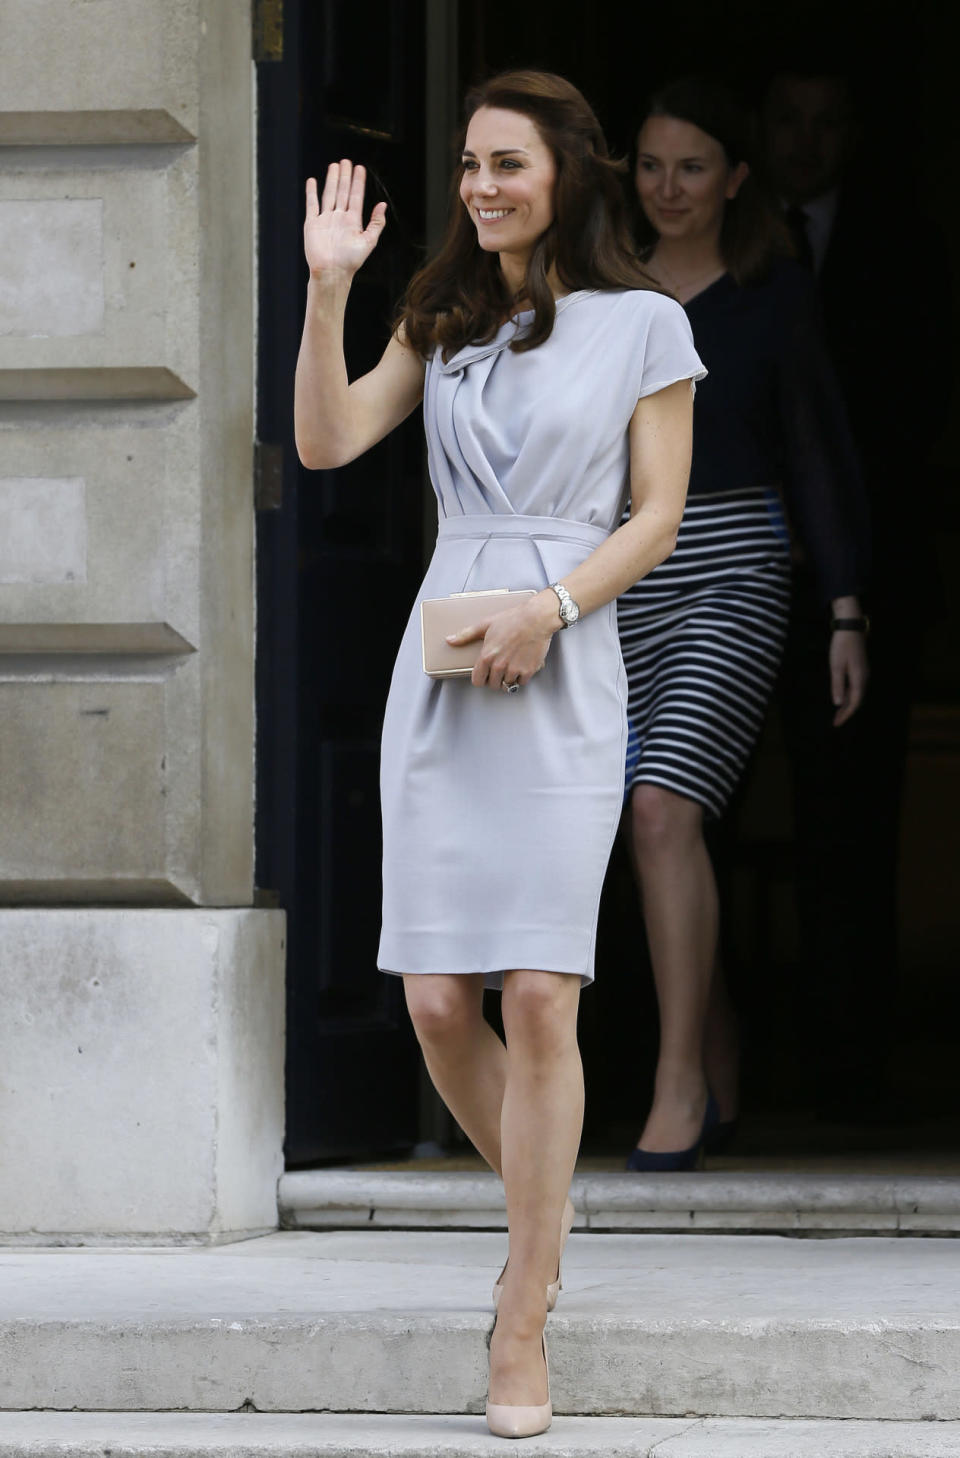 <p>For a lunch date in London, Kate wore a beautifully draped dress by Roksanda Ilincic along with her trusted nude LK Bennett heels and clutch.</p><p><i>[Photo: PA]</i></p>